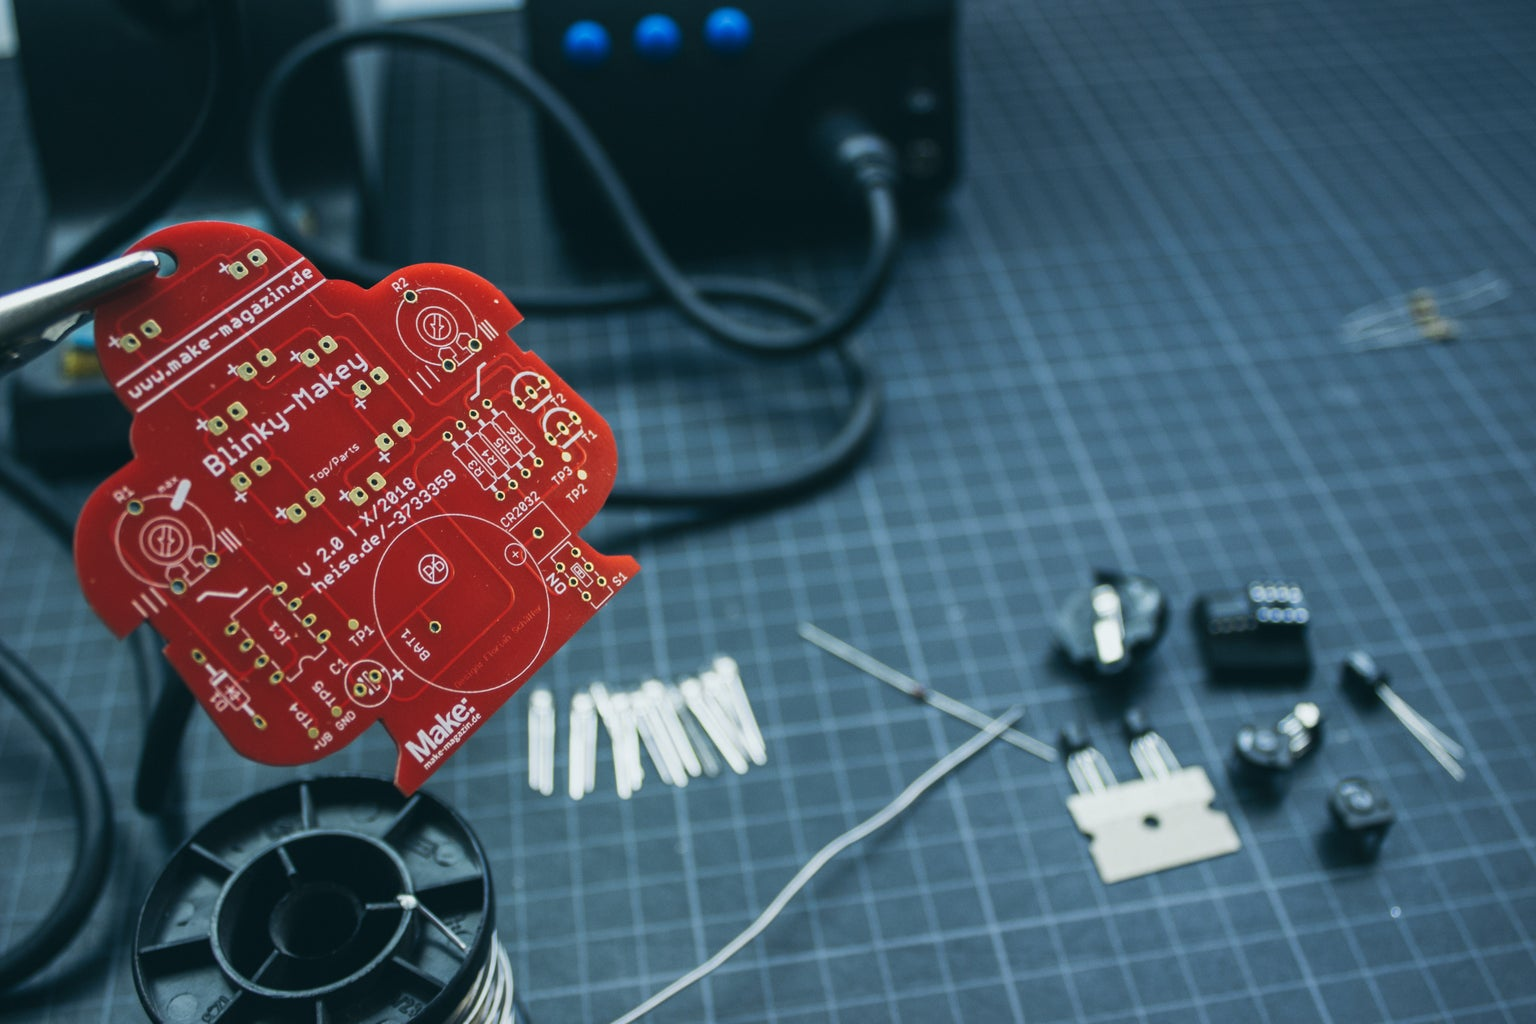 More Informations About Blinky Makey